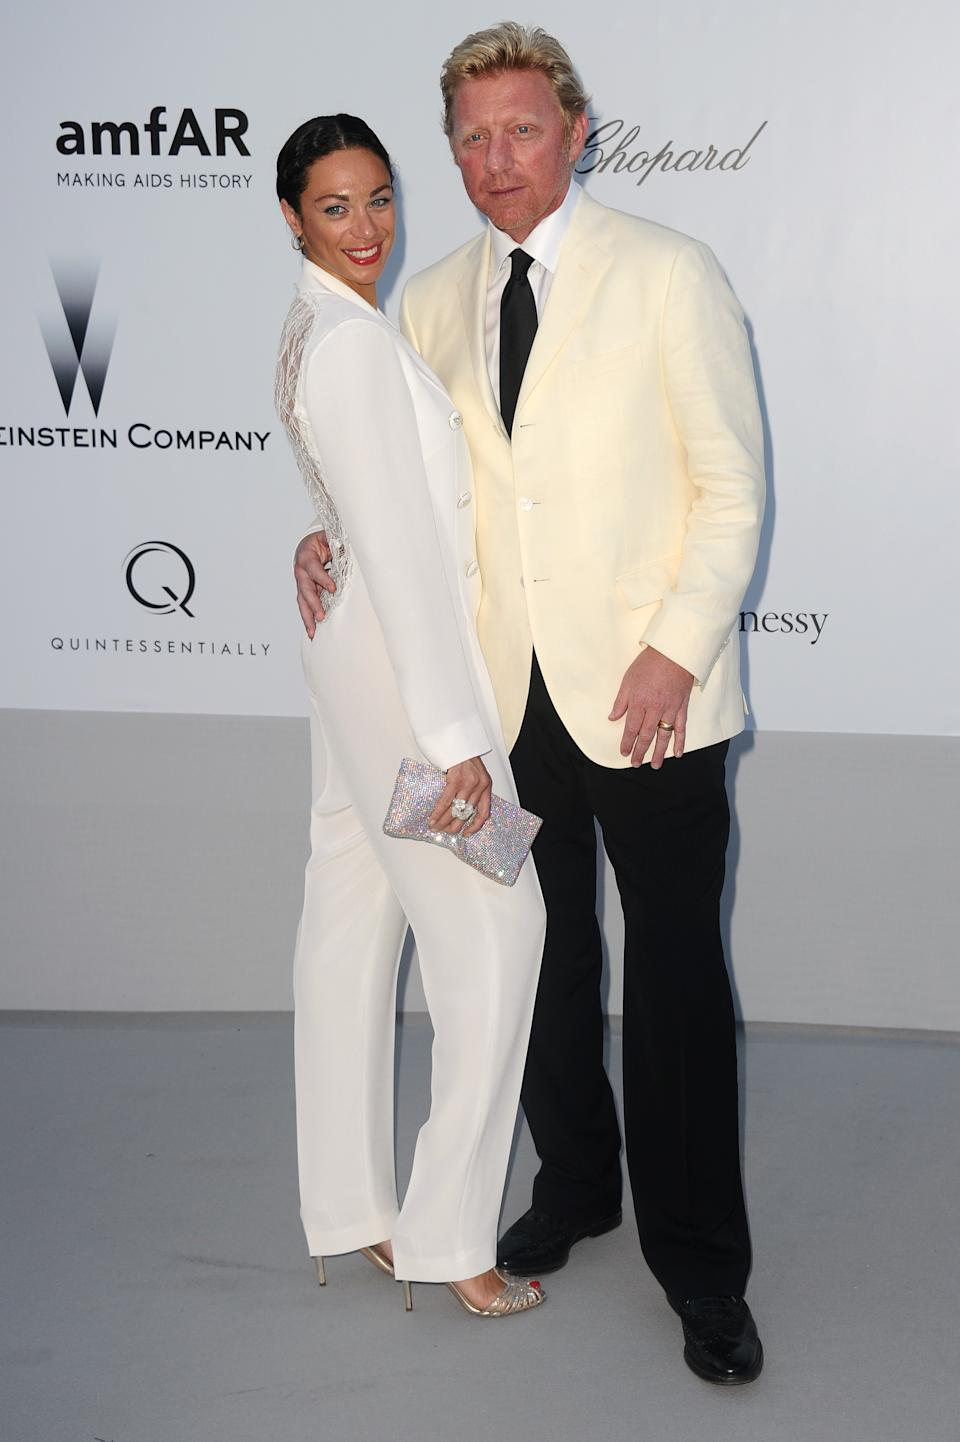 Former tennis player Boris Becker, right, and his wife Lilly arrive for the amfAR Cinema Against AIDS benefit at the Hotel du Cap-Eden-Roc, during the 65th Cannes film festival, in Cap d'Antibes, southern France, Thursday, May 24, 2012. (AP Photo/Jonathan Short)